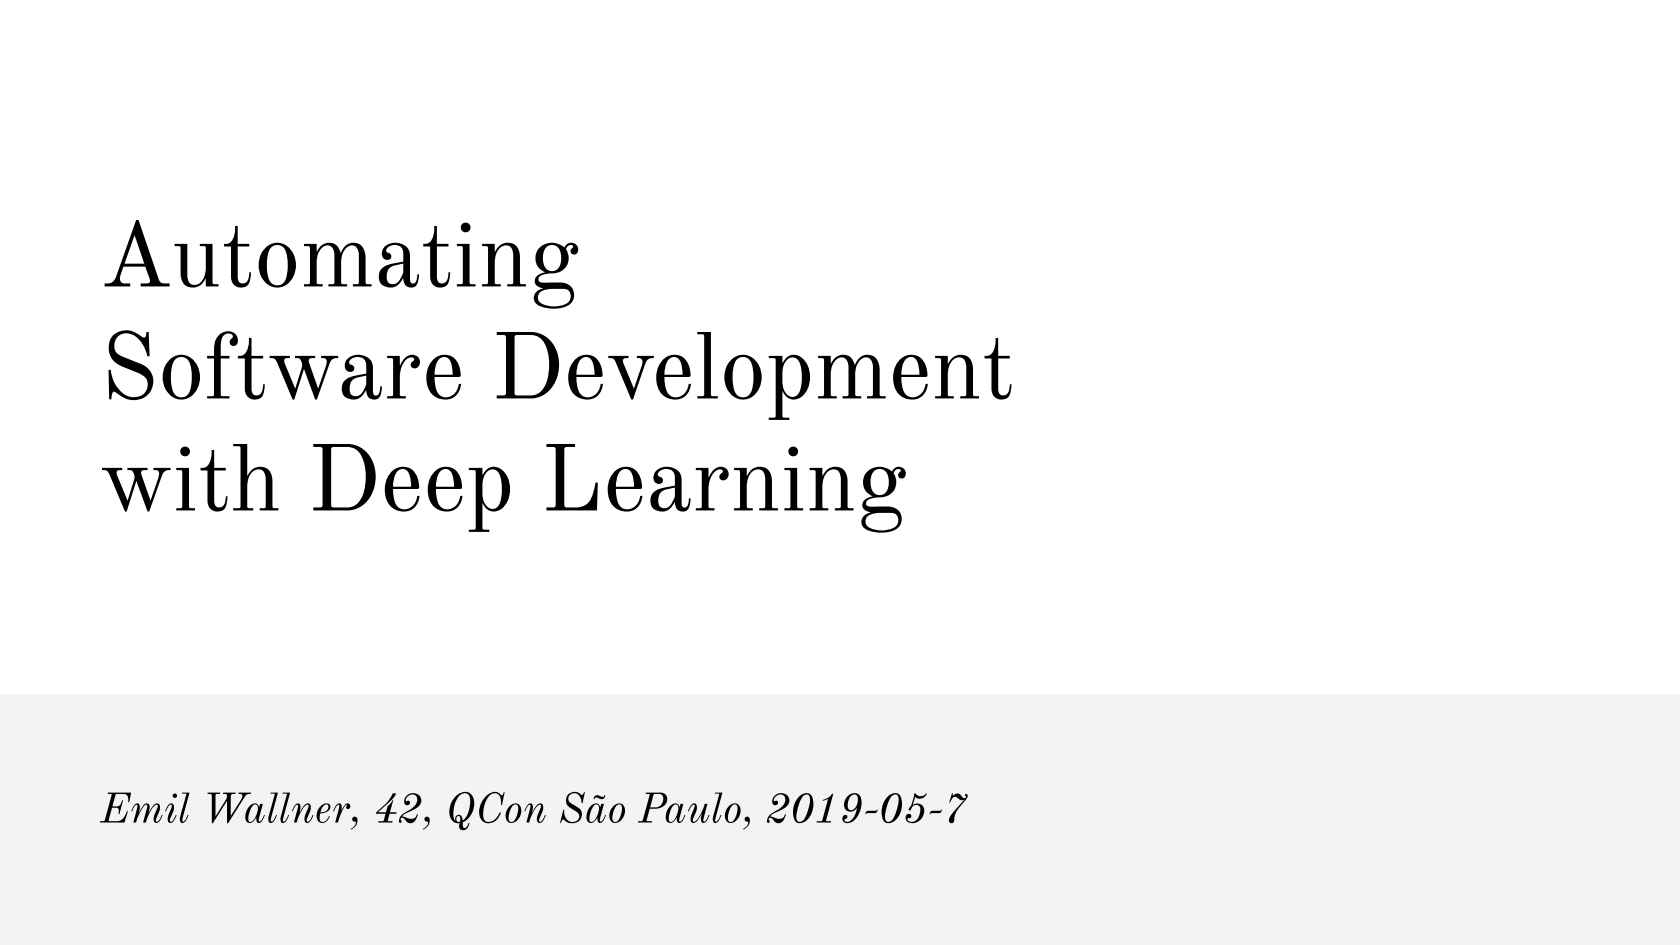 Automating Software Development with Deep Learning